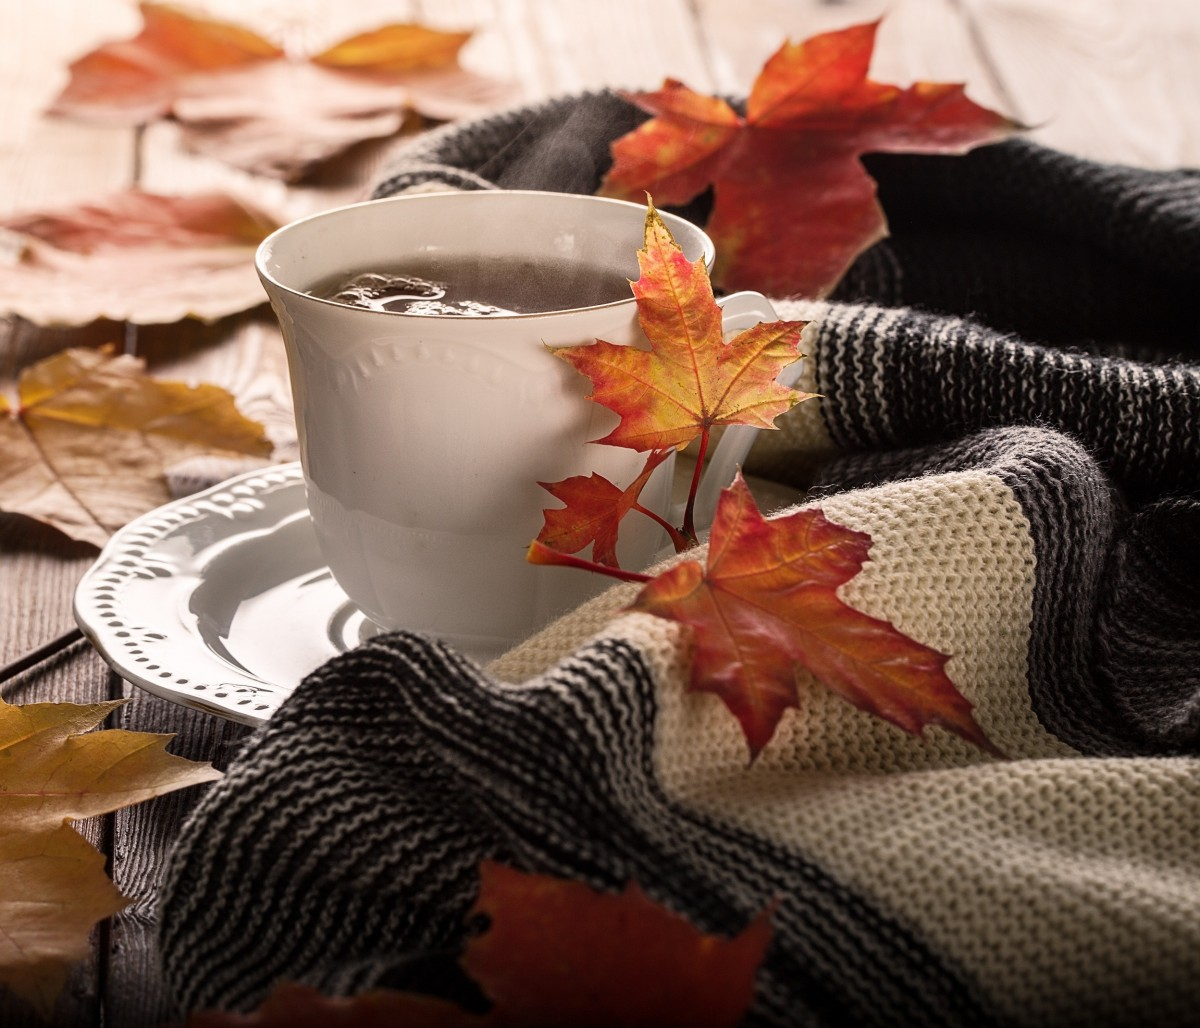 Jigsaw Puzzle Solve jigsaw puzzles online - Autumn drink